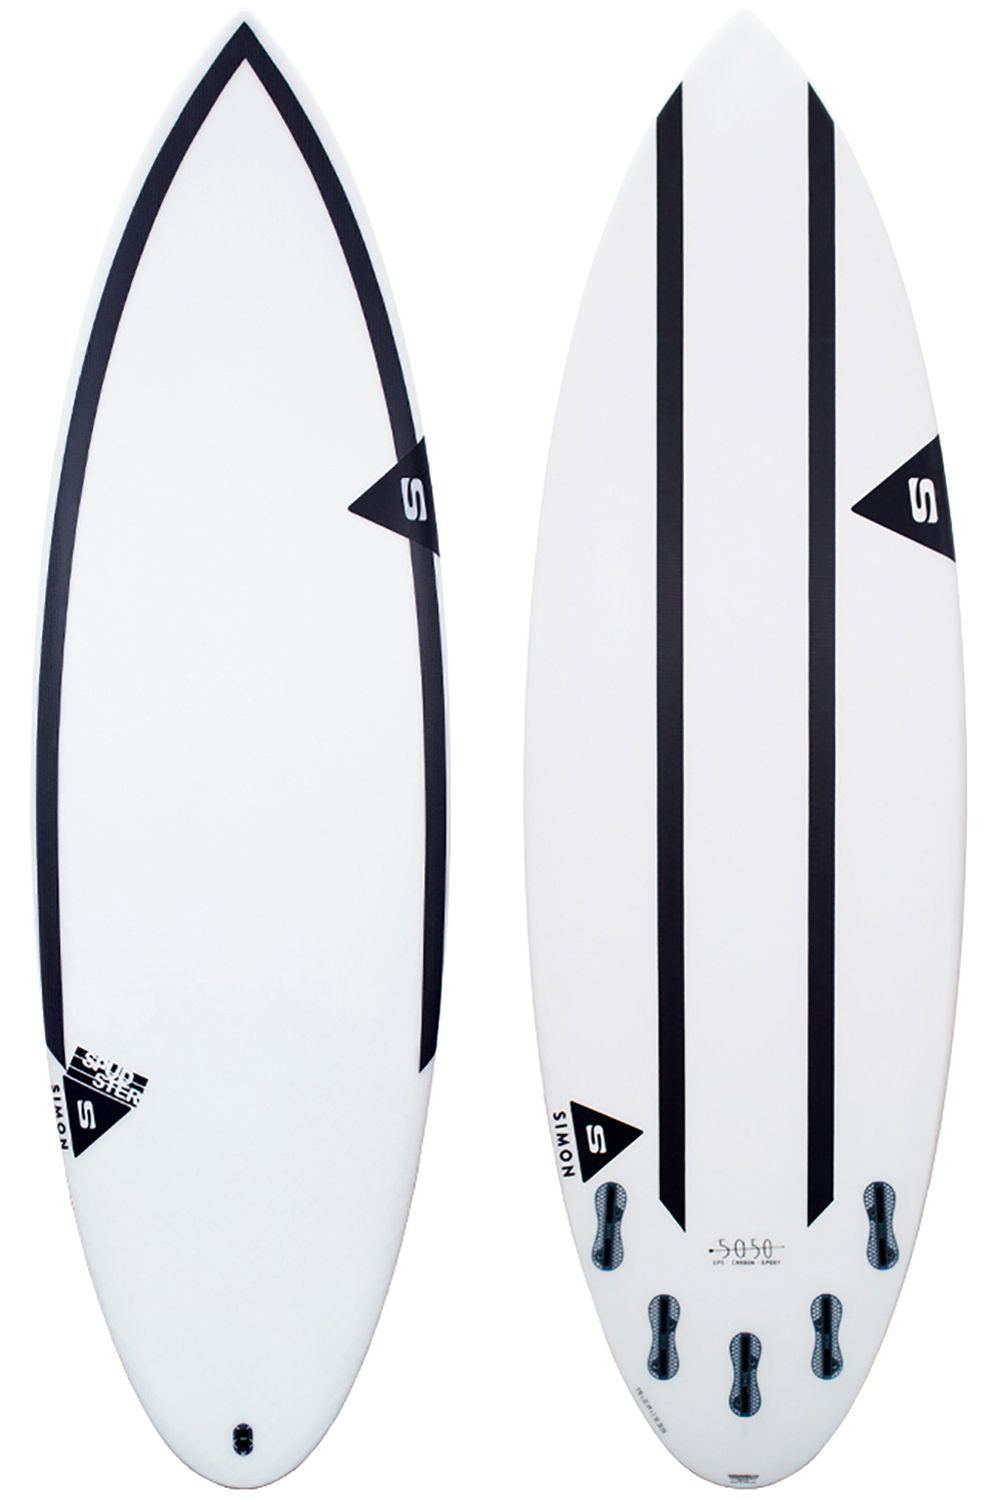 Prancha Surf Simon Anderson SPUDSTER Round Tail - White FCS II Multisystem 5ft9